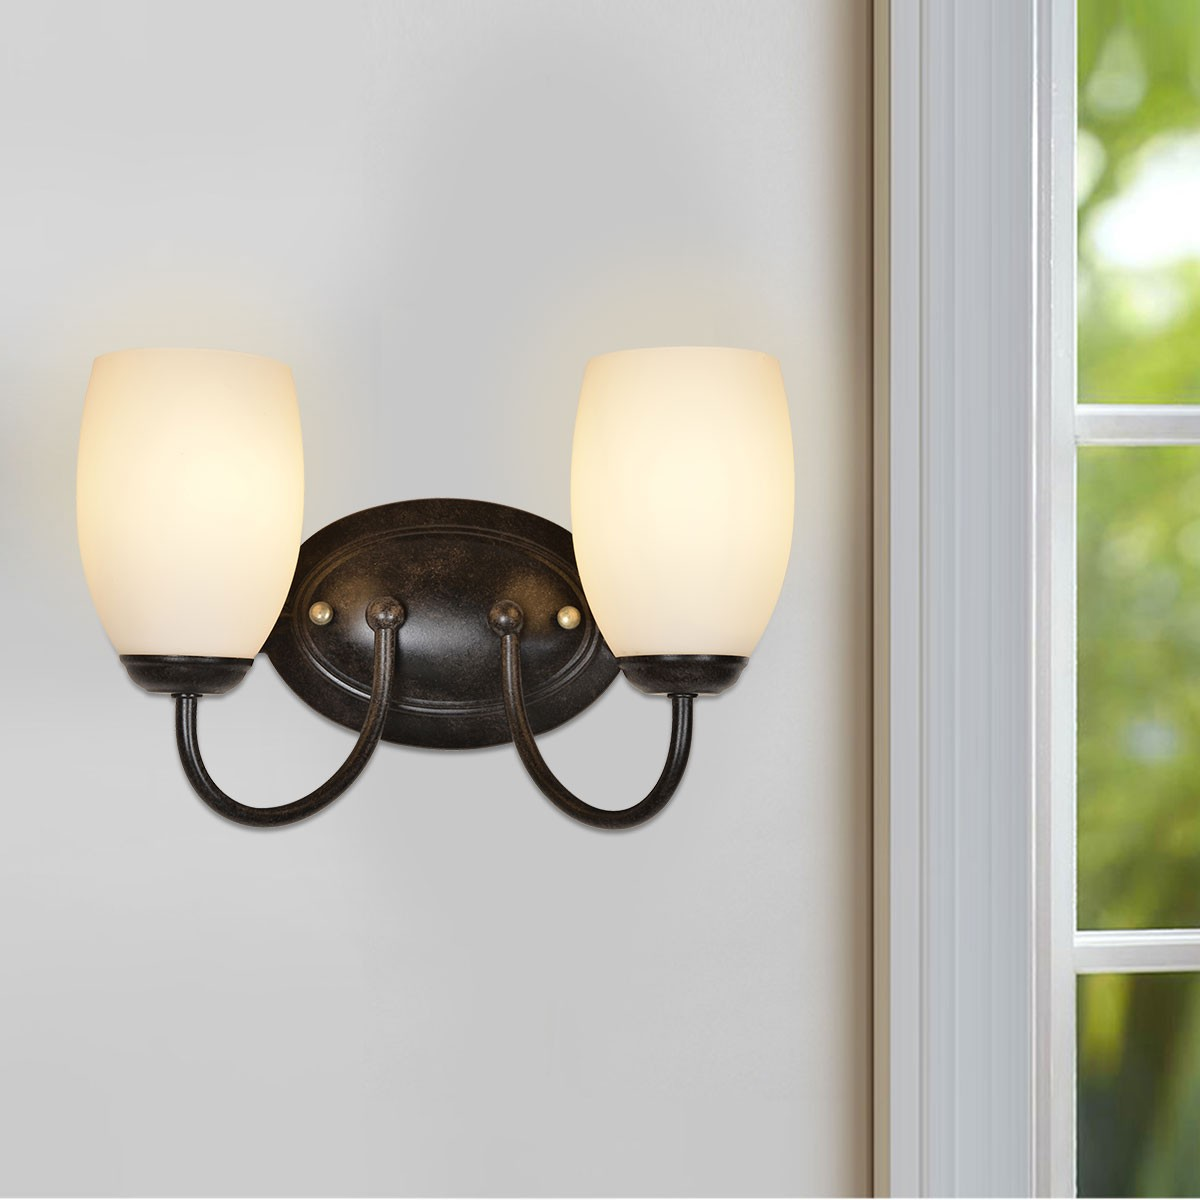 2-Light Black Iron Wall Sconce with Glass Shades (HKW31248-2)